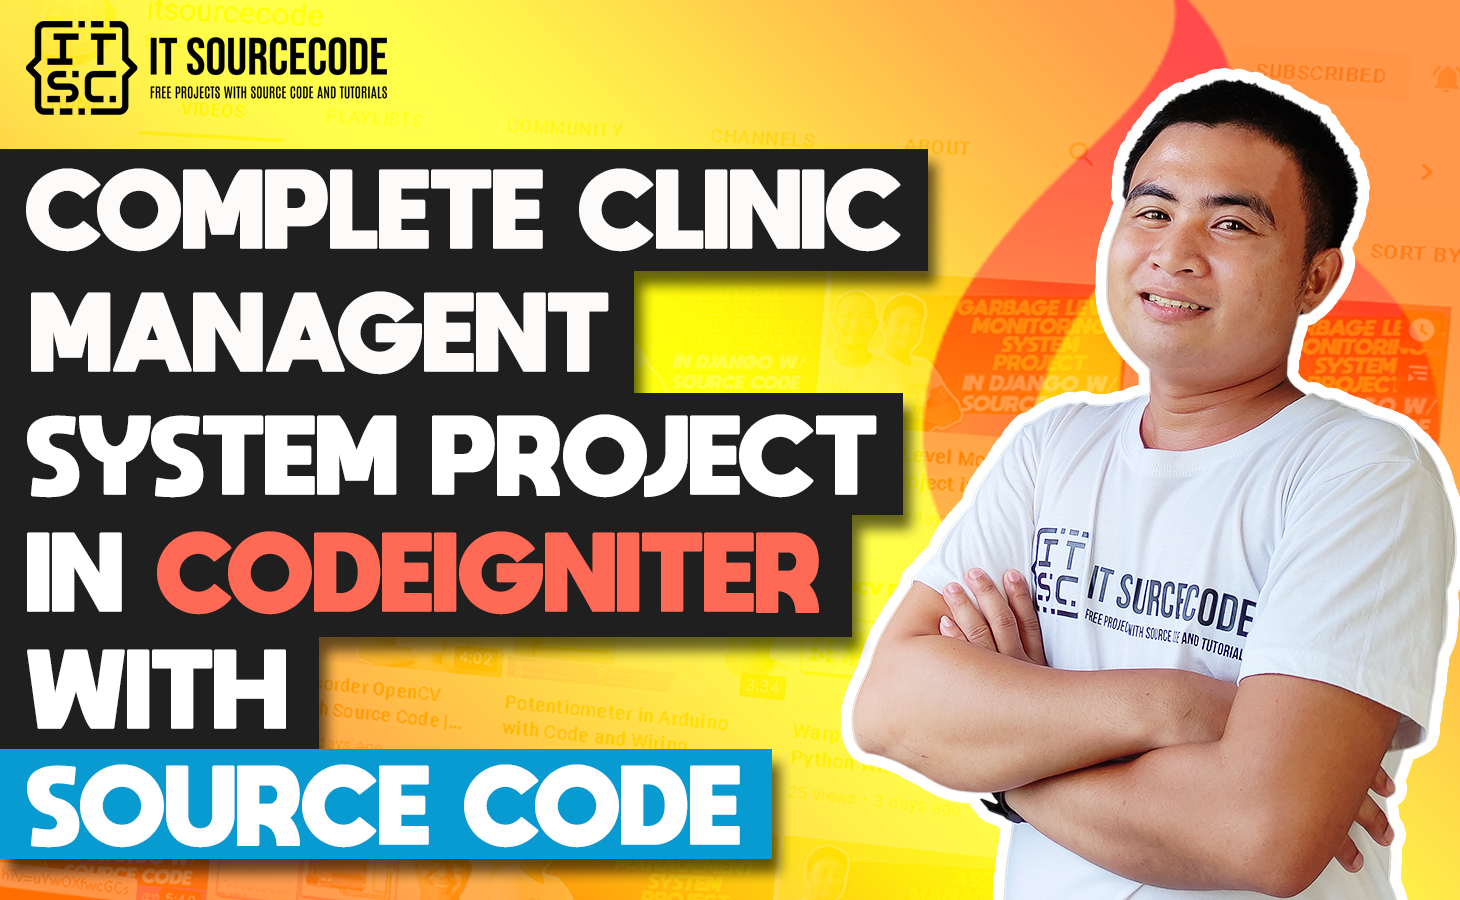 Clinic Management System In CodeIgniter With Source Code